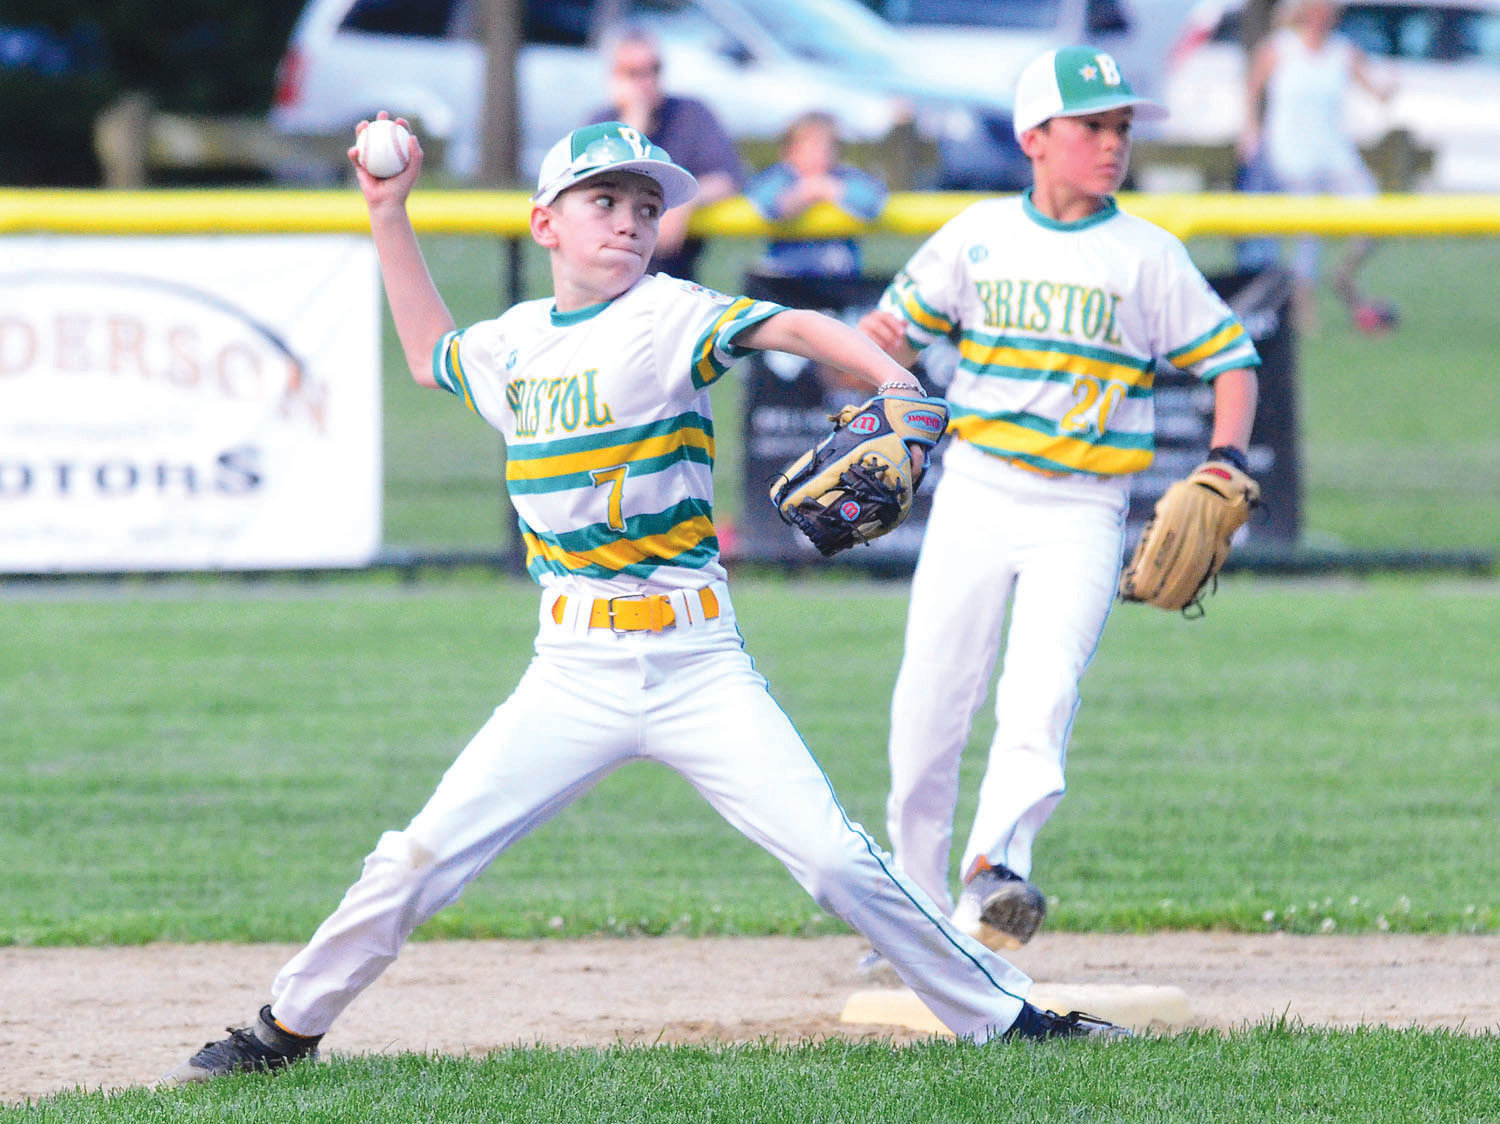 Logan Dubois fires a throw to first base during a King Philip Little League all-star game last summer.